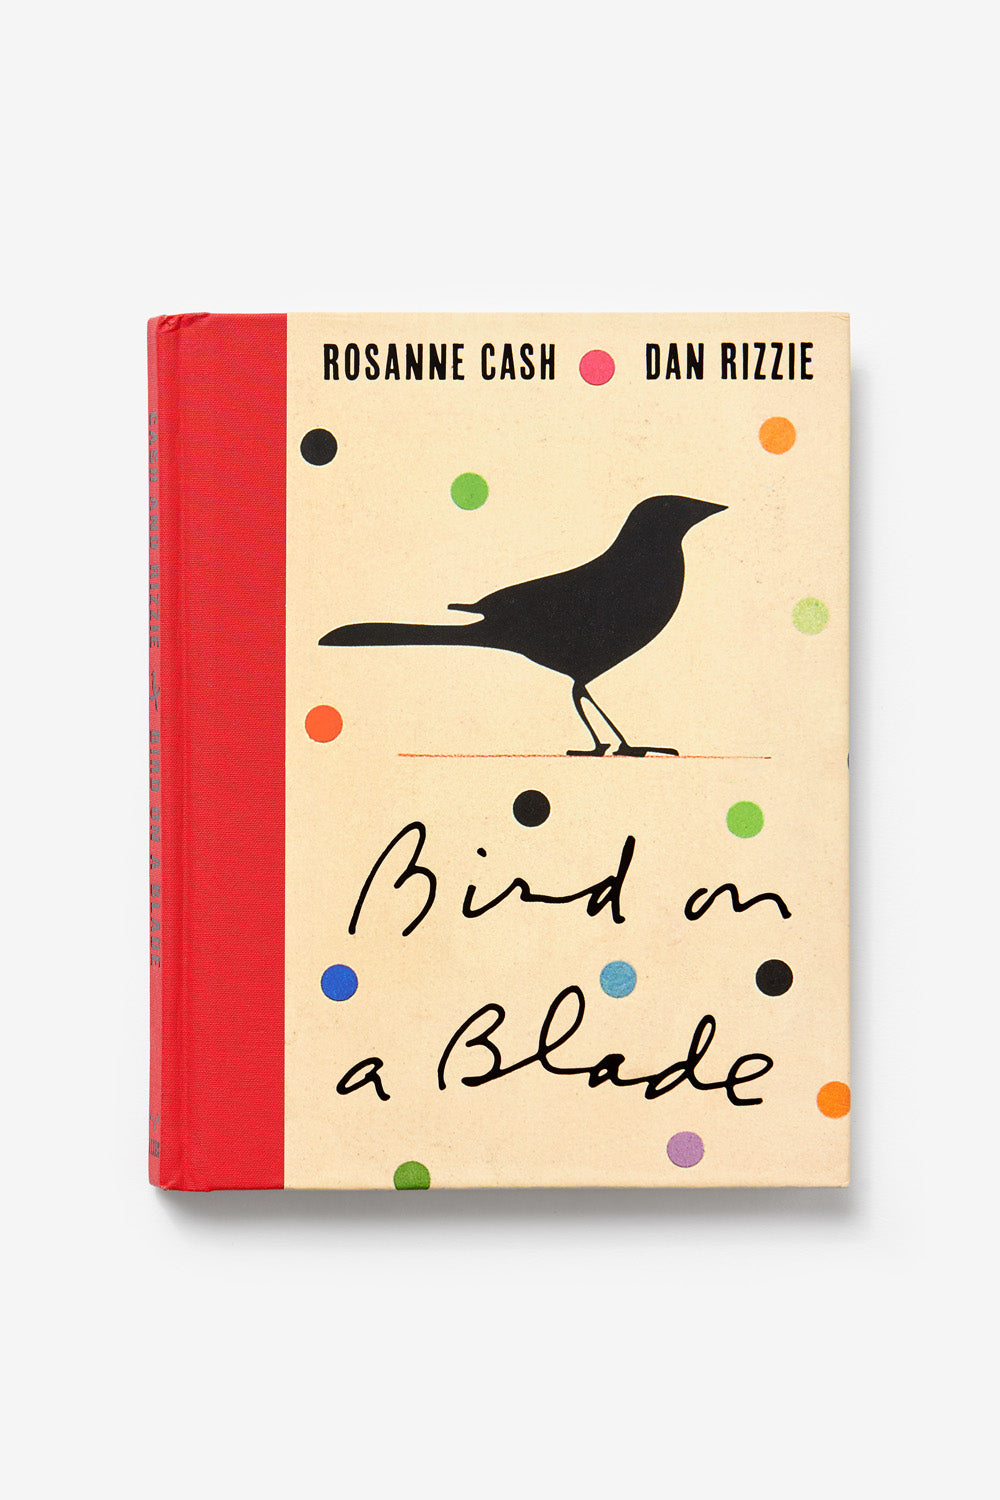 The School of Making Bird on a Blade by Dan Rizzie and Rosanne Cash